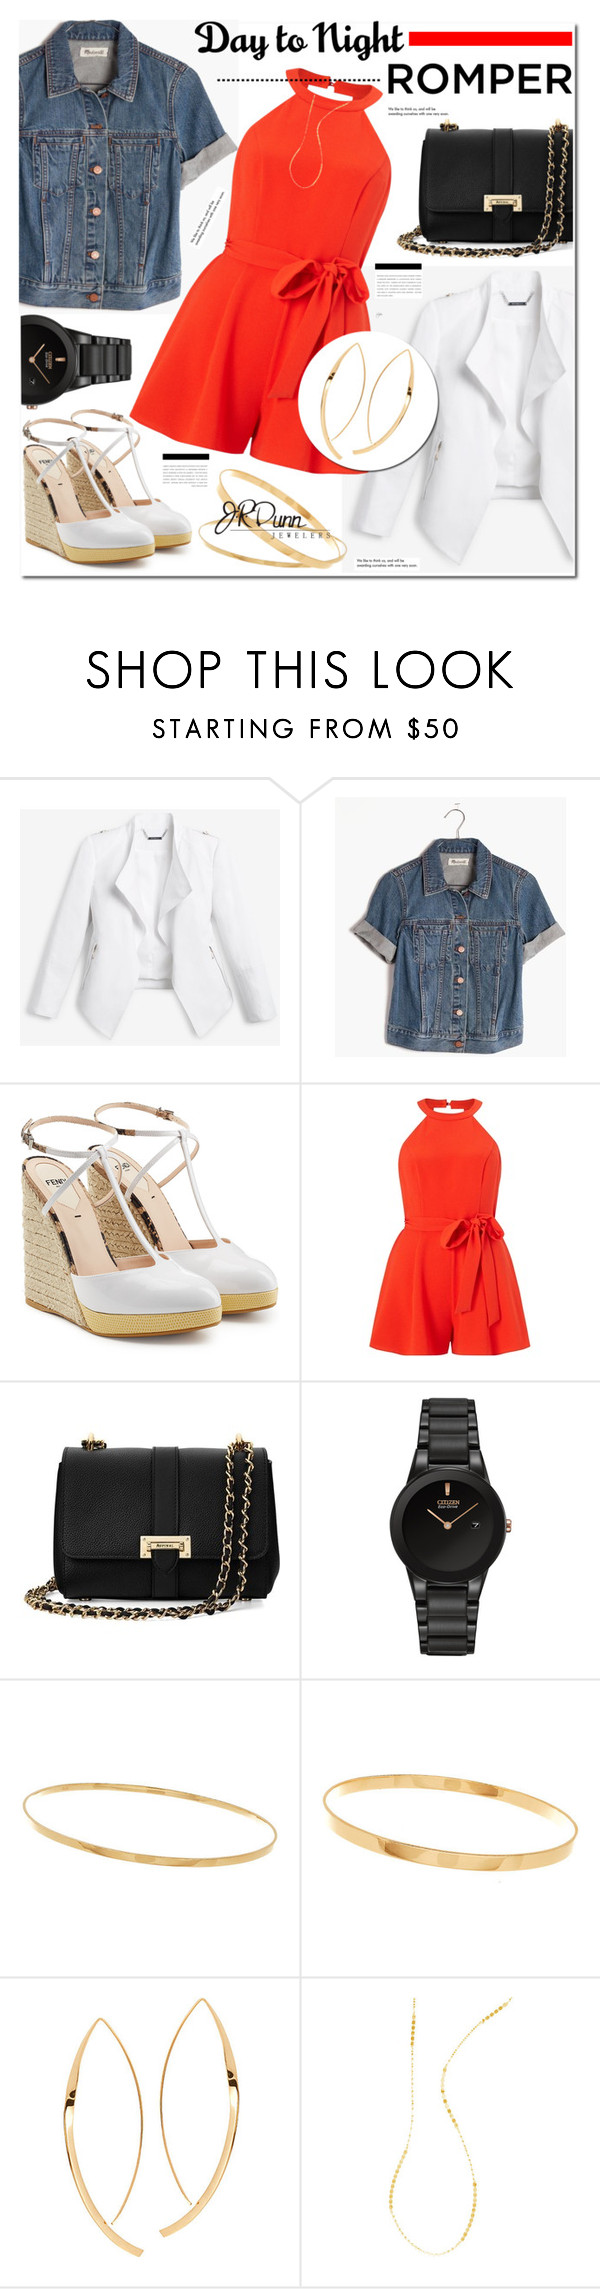 """""""Fashion Forward with JRDunn.com- Day to night Rompers"""" by cly88 ❤ liked on Polyvore featuring White House Black Market, Madewell, Fendi, Miss Selfridge, Aspinal of London, Citizen, Lana, Tiffany & Co. and Dunn"""